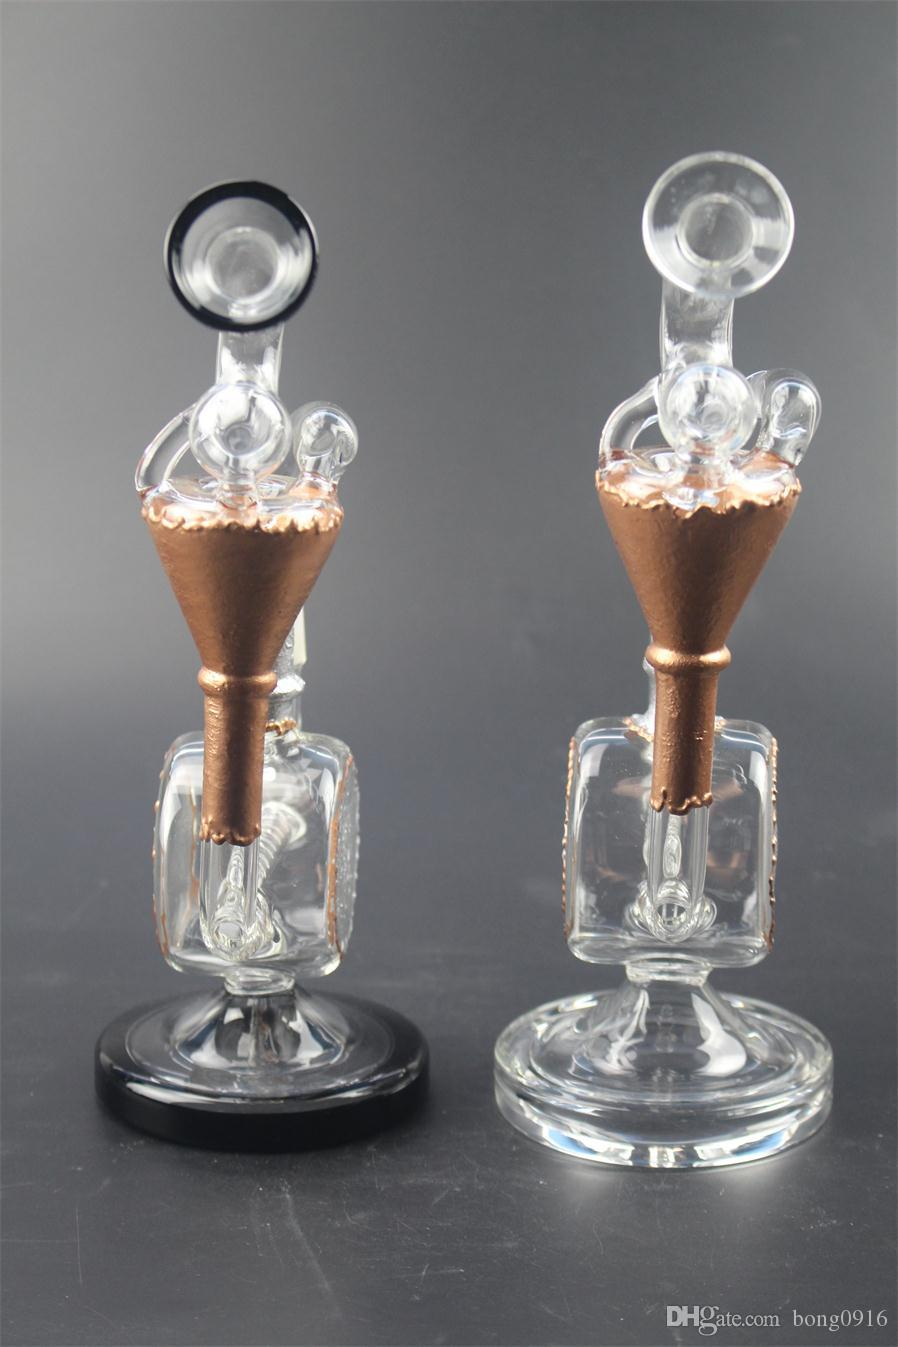 New technology of drum water voice sound recycling glass pipes tobacco prices low